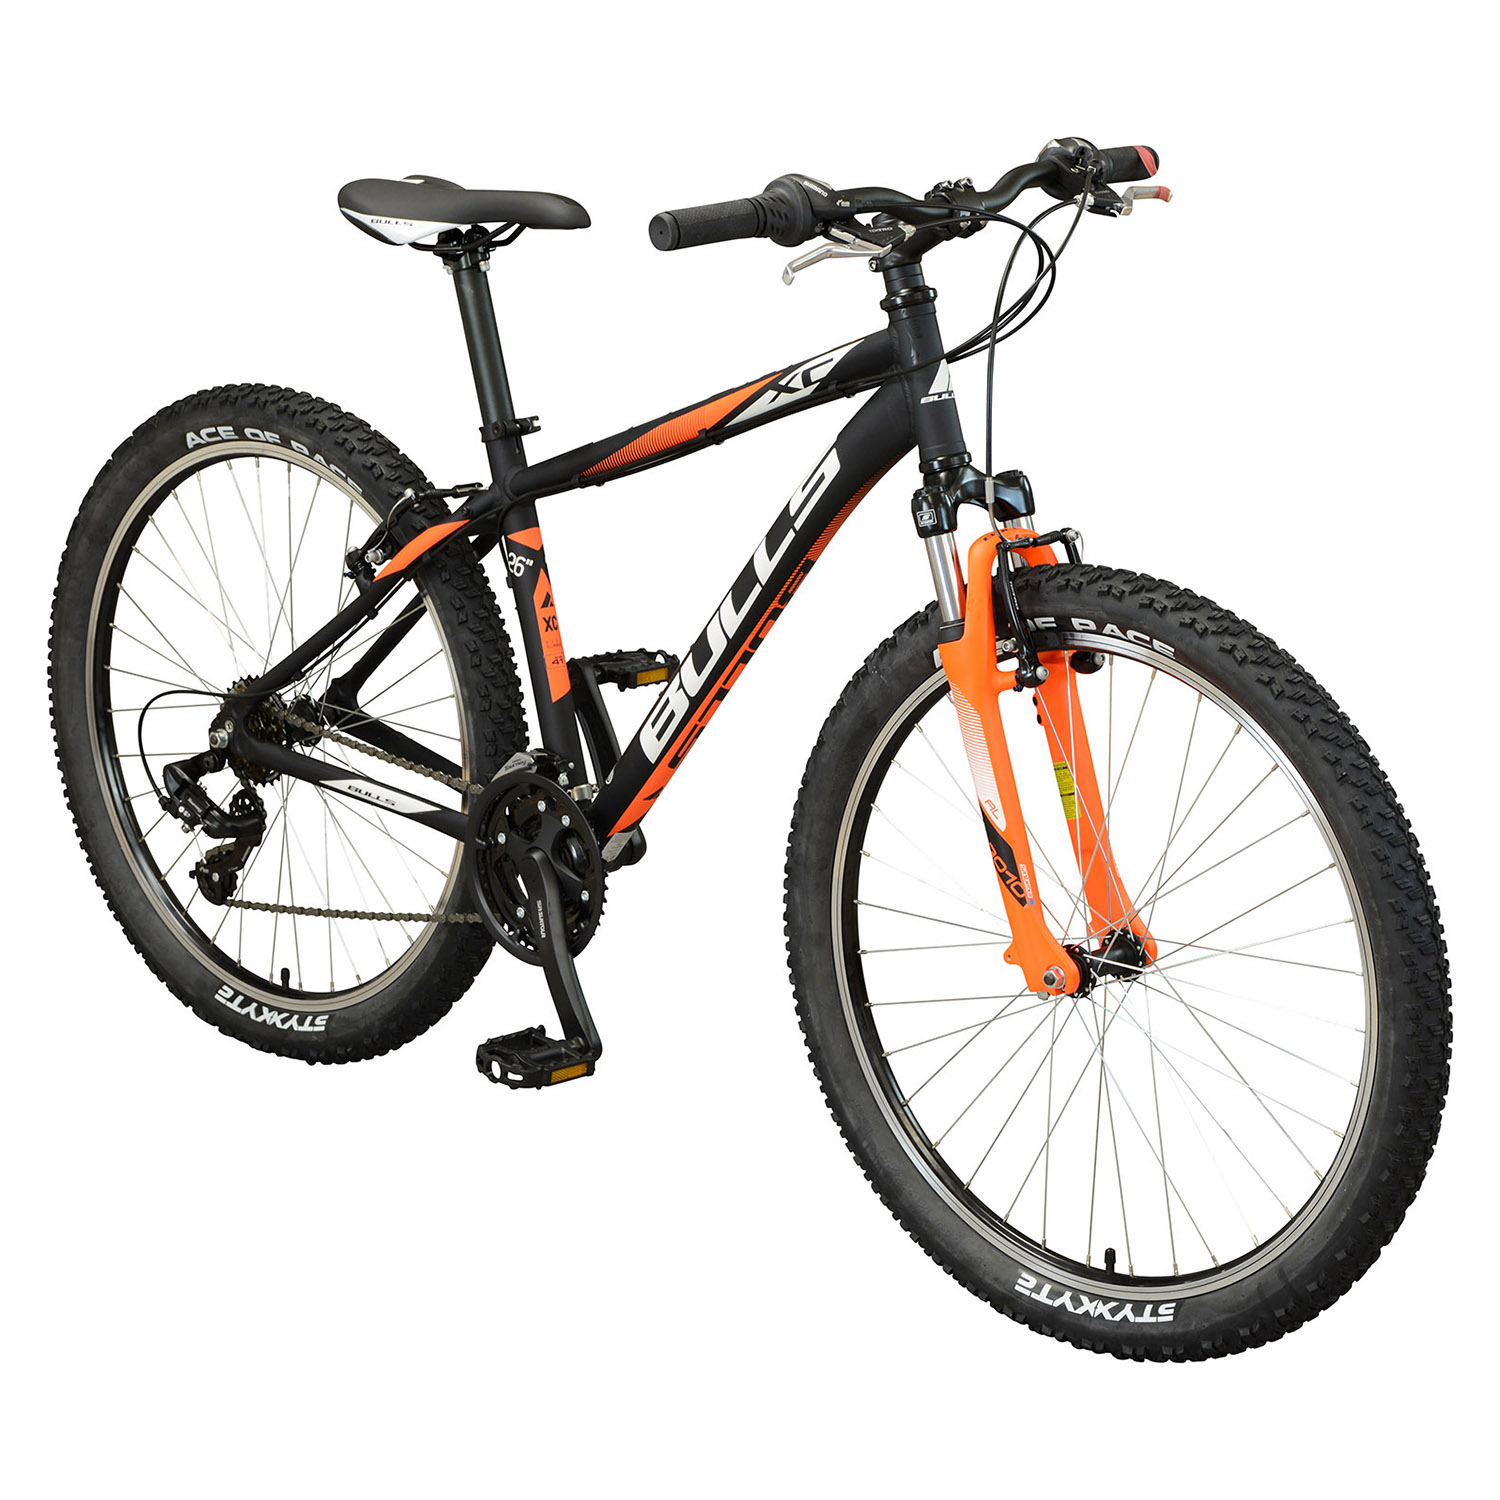 bulls pulsar evo 26 zoll mountainbike hardtail 41 cm. Black Bedroom Furniture Sets. Home Design Ideas